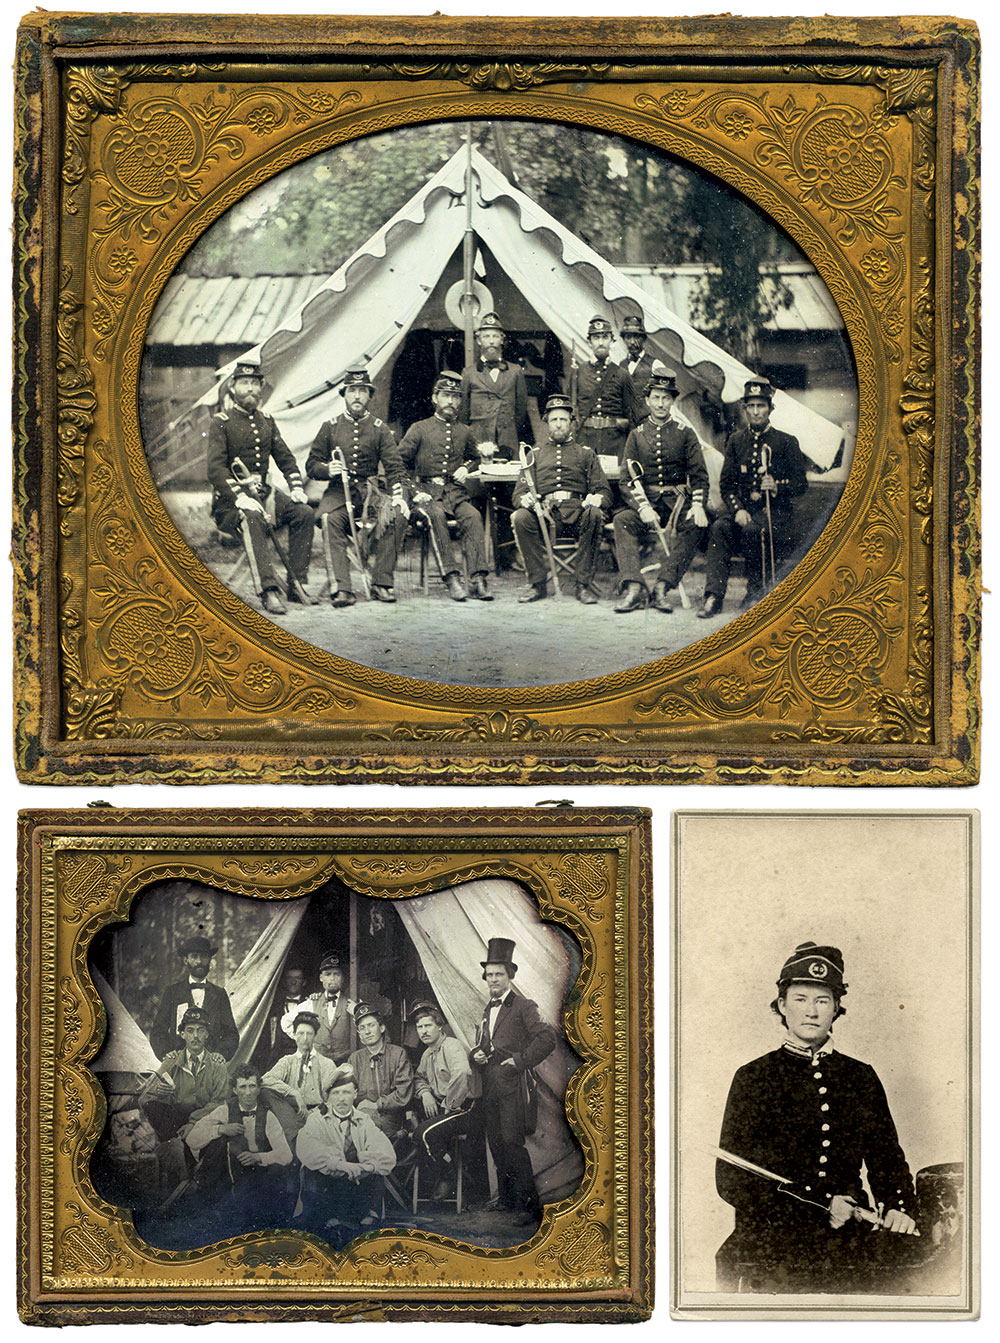 Top: Officers of the Clinch Rifles pose before a spacious tent with fancy edging. Note the hat and small flag attached to the tent pole and, hanging from an interior tent wall, a large eagle and coat. Half-plate ambrotype by an anonymous photographer. Above, left: Enlisted men of the company pose with three civilians, two of whom wear large ribbons. Half-plate ambrotype by an anonymous photographer. Above, right: Unidentified private of the company. Carte de visite by Perkins & Co. of Augusta, Ga.